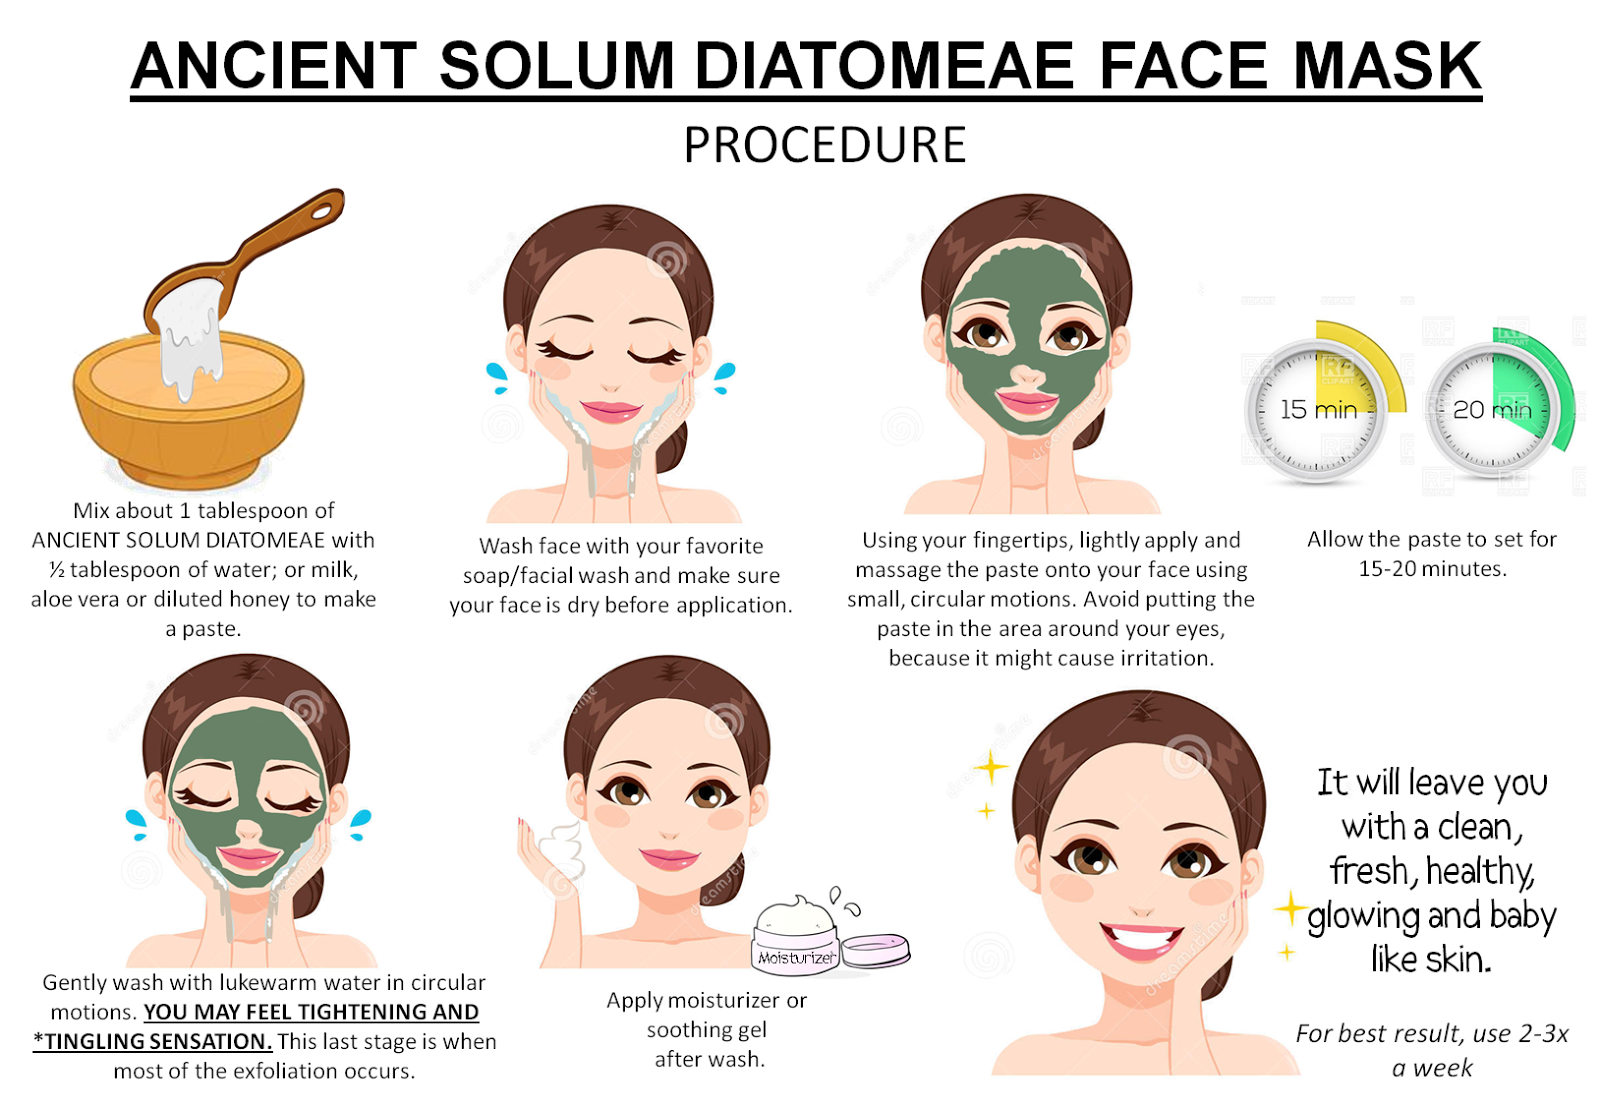 Ancient Beauty and Wellness: What is Solum Diatomeae?